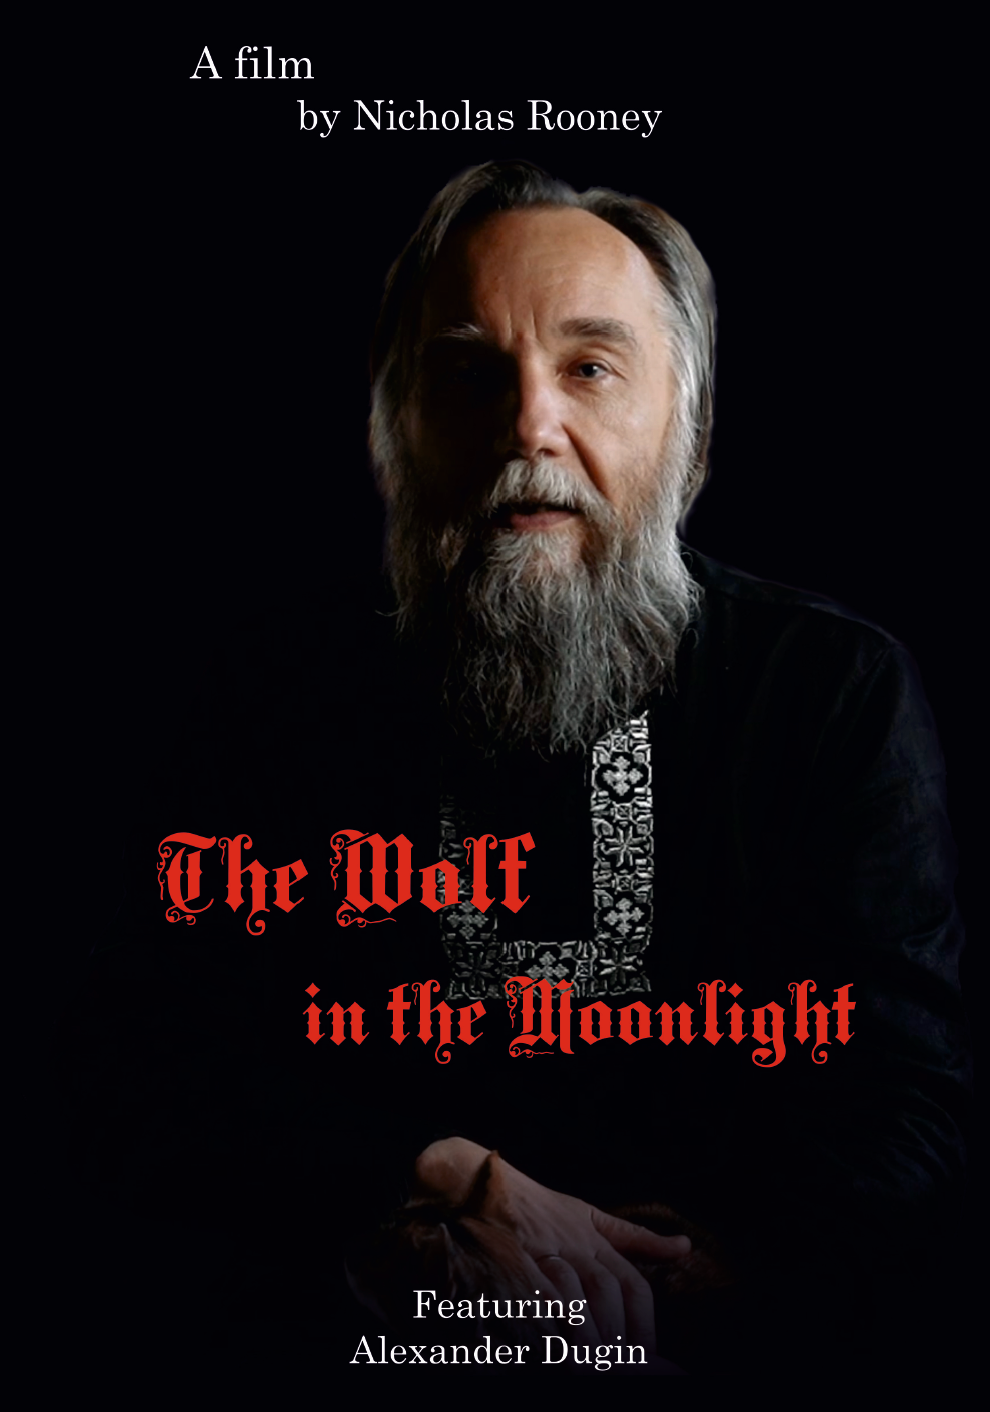 The Wolf in the Moonlight documentary